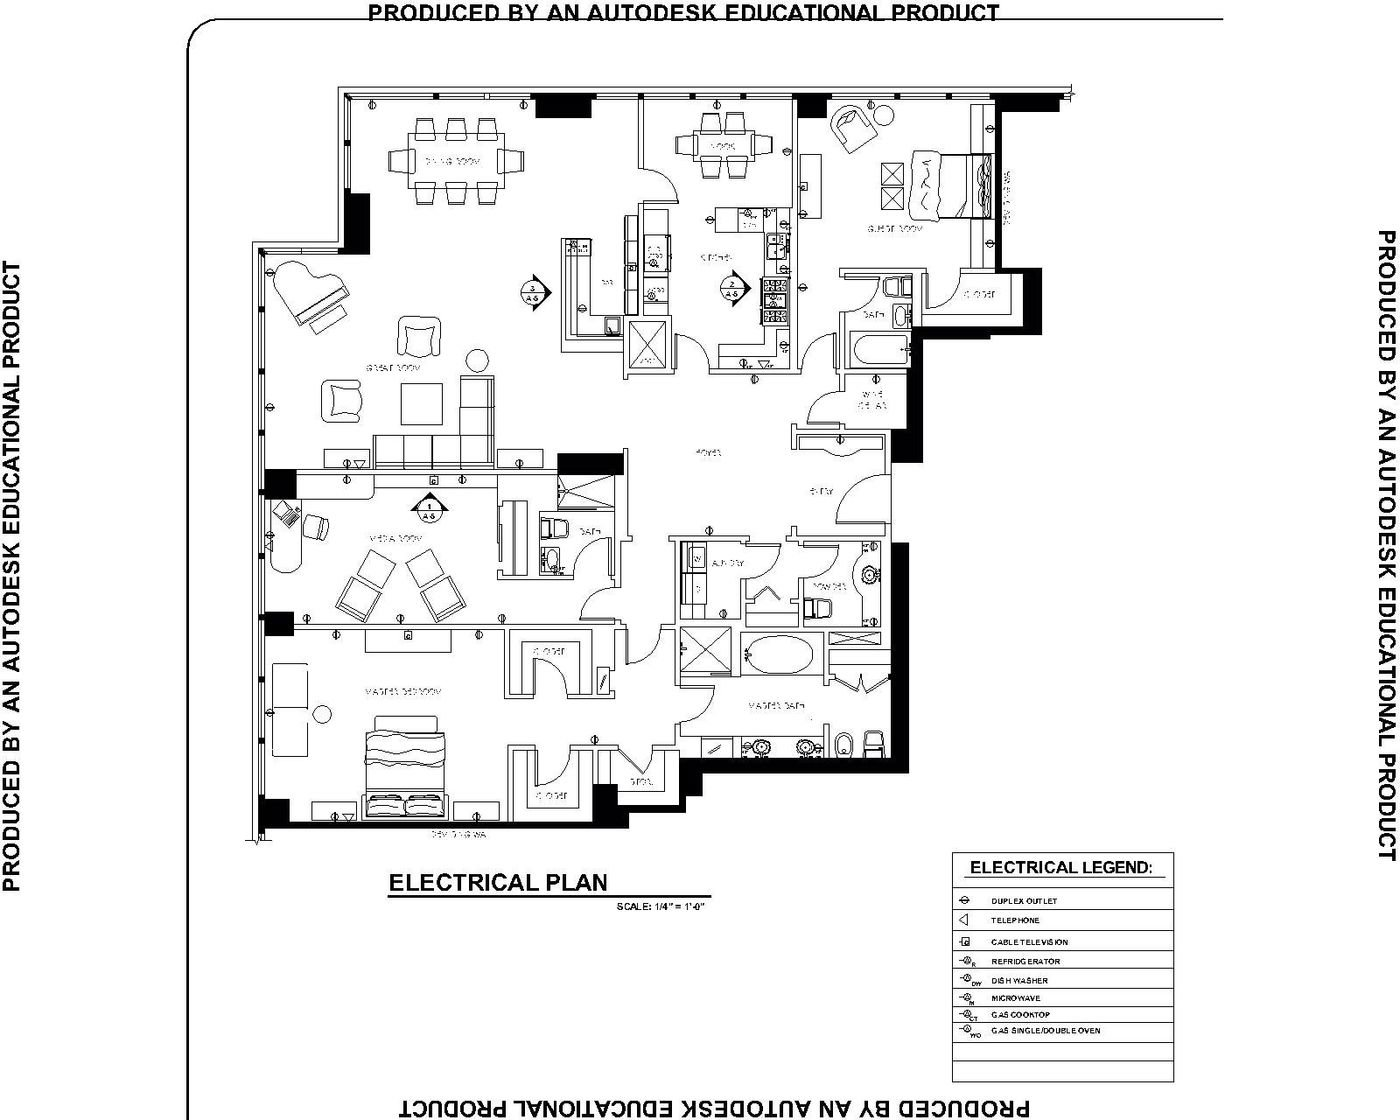 Residential Electrical Plan